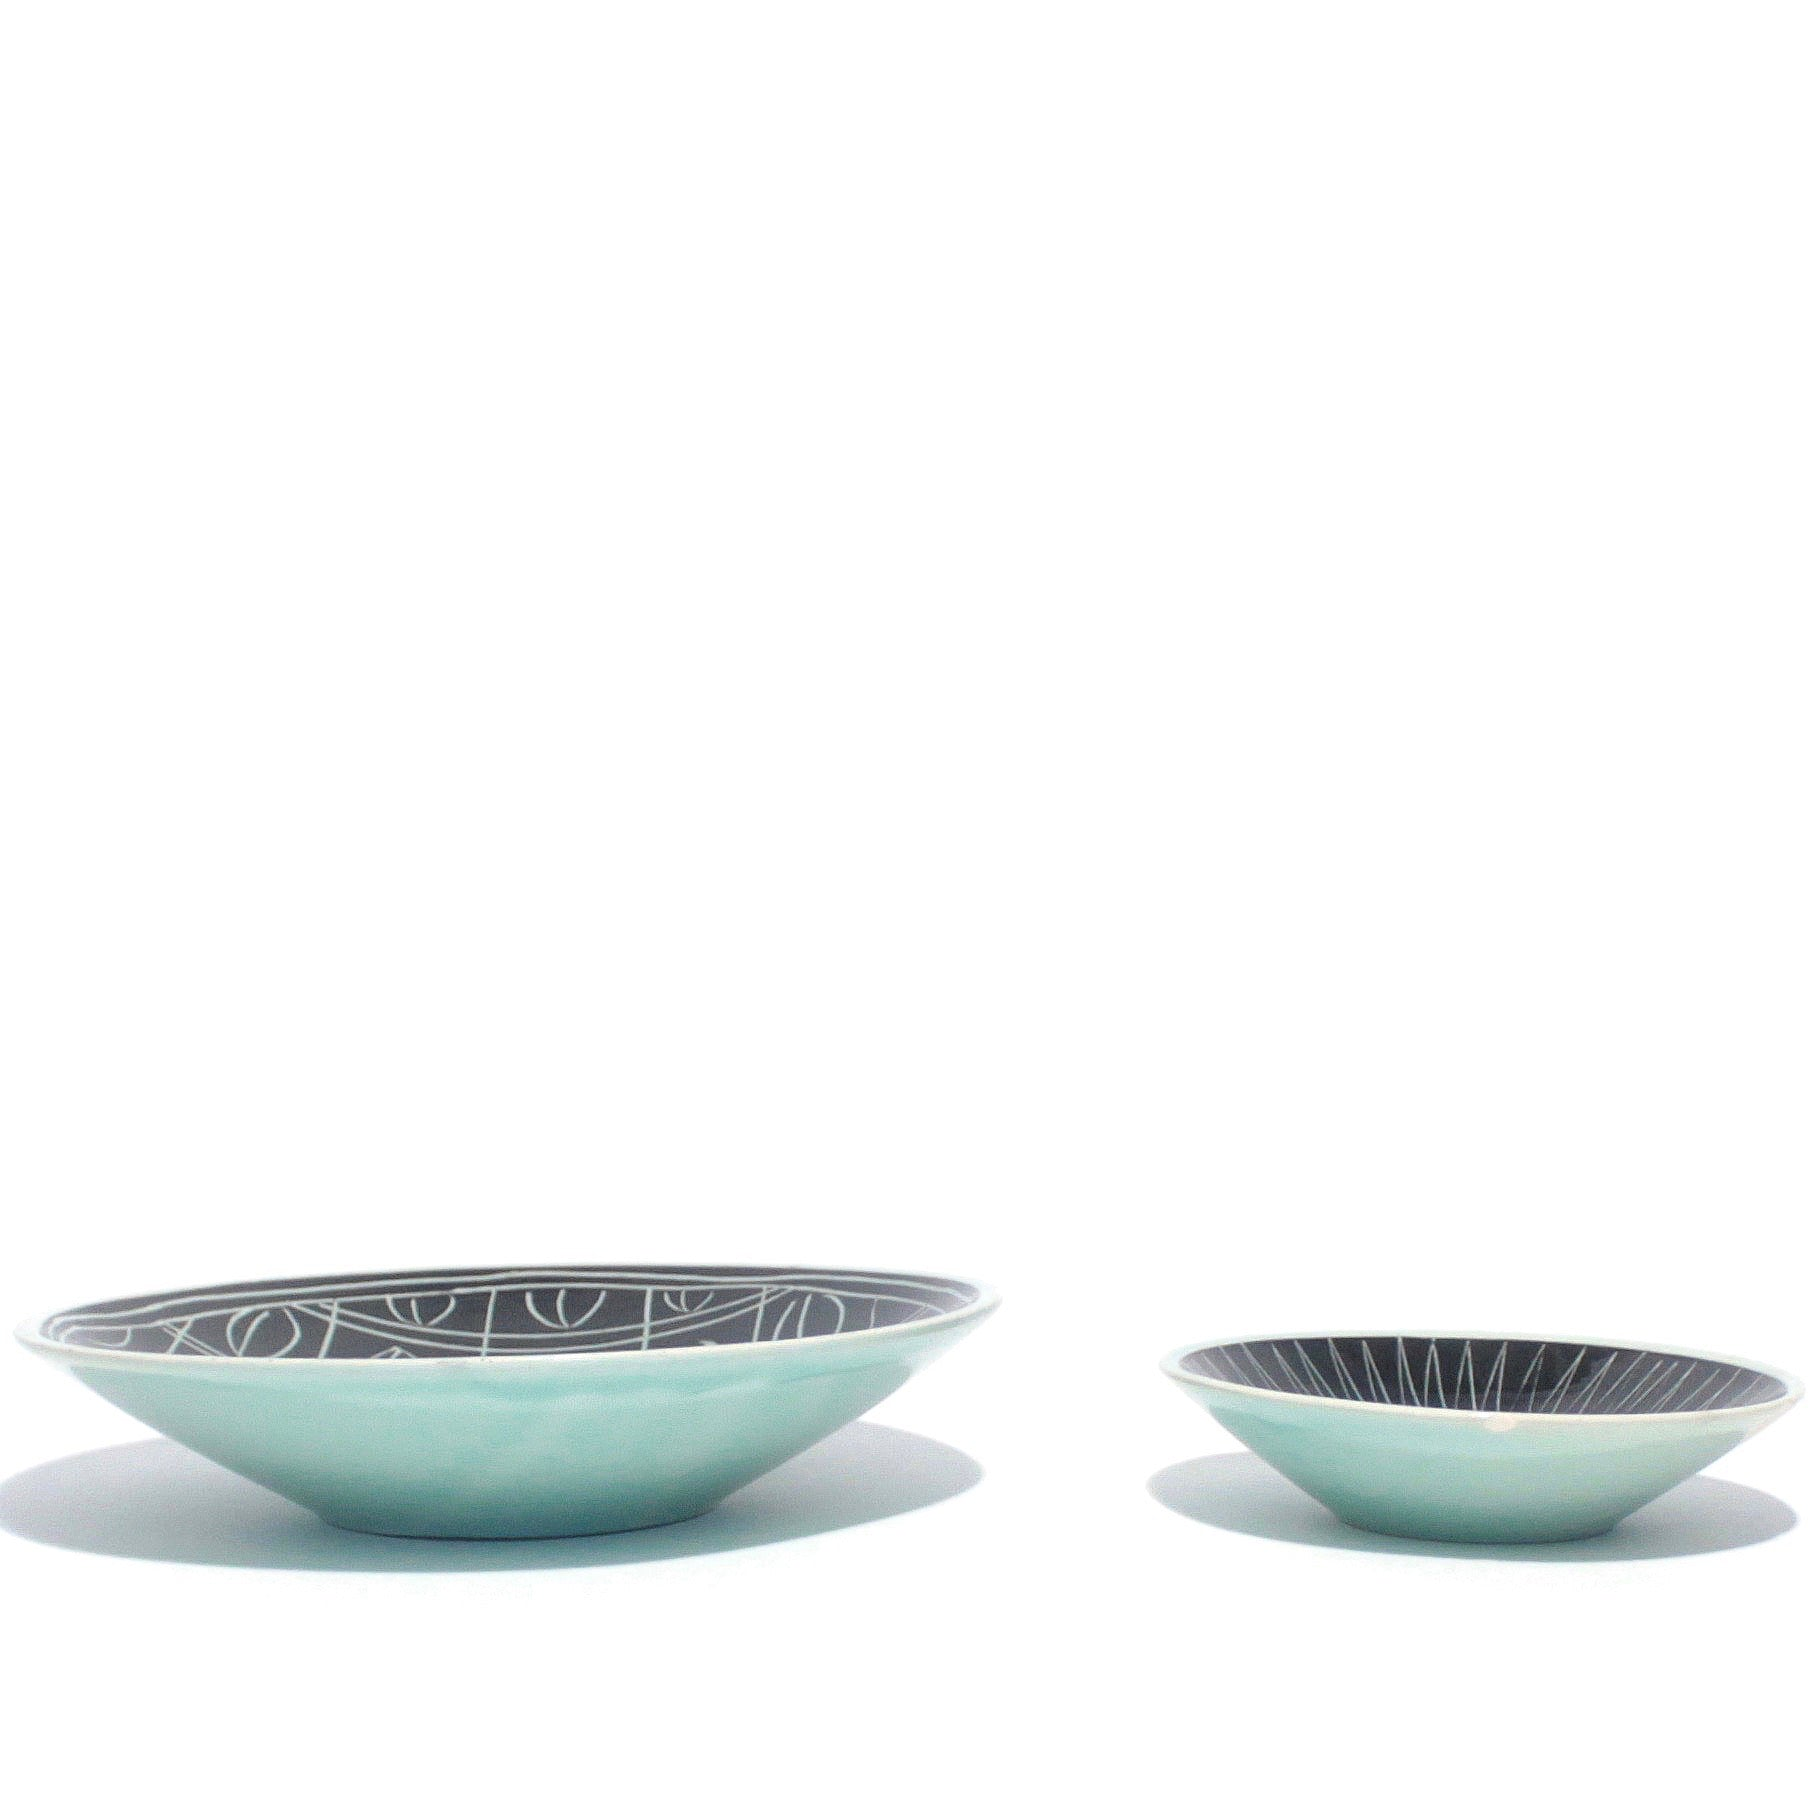 Set of 2 Decorative pocket dishes